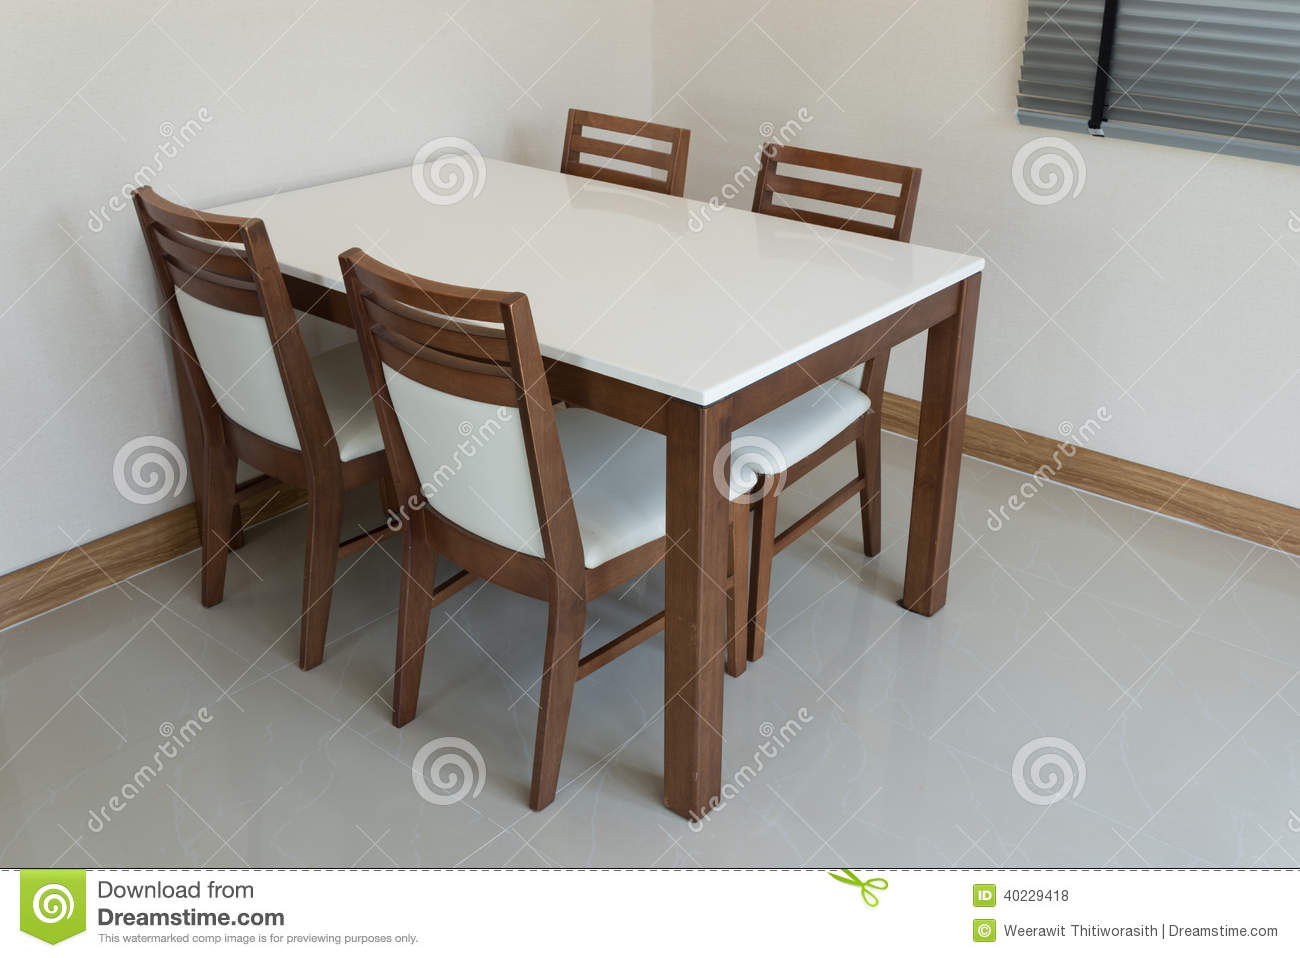 Table Cuisine 4 Personnes Table De Salle à Manger En Bois Photo Stock Image 40229418